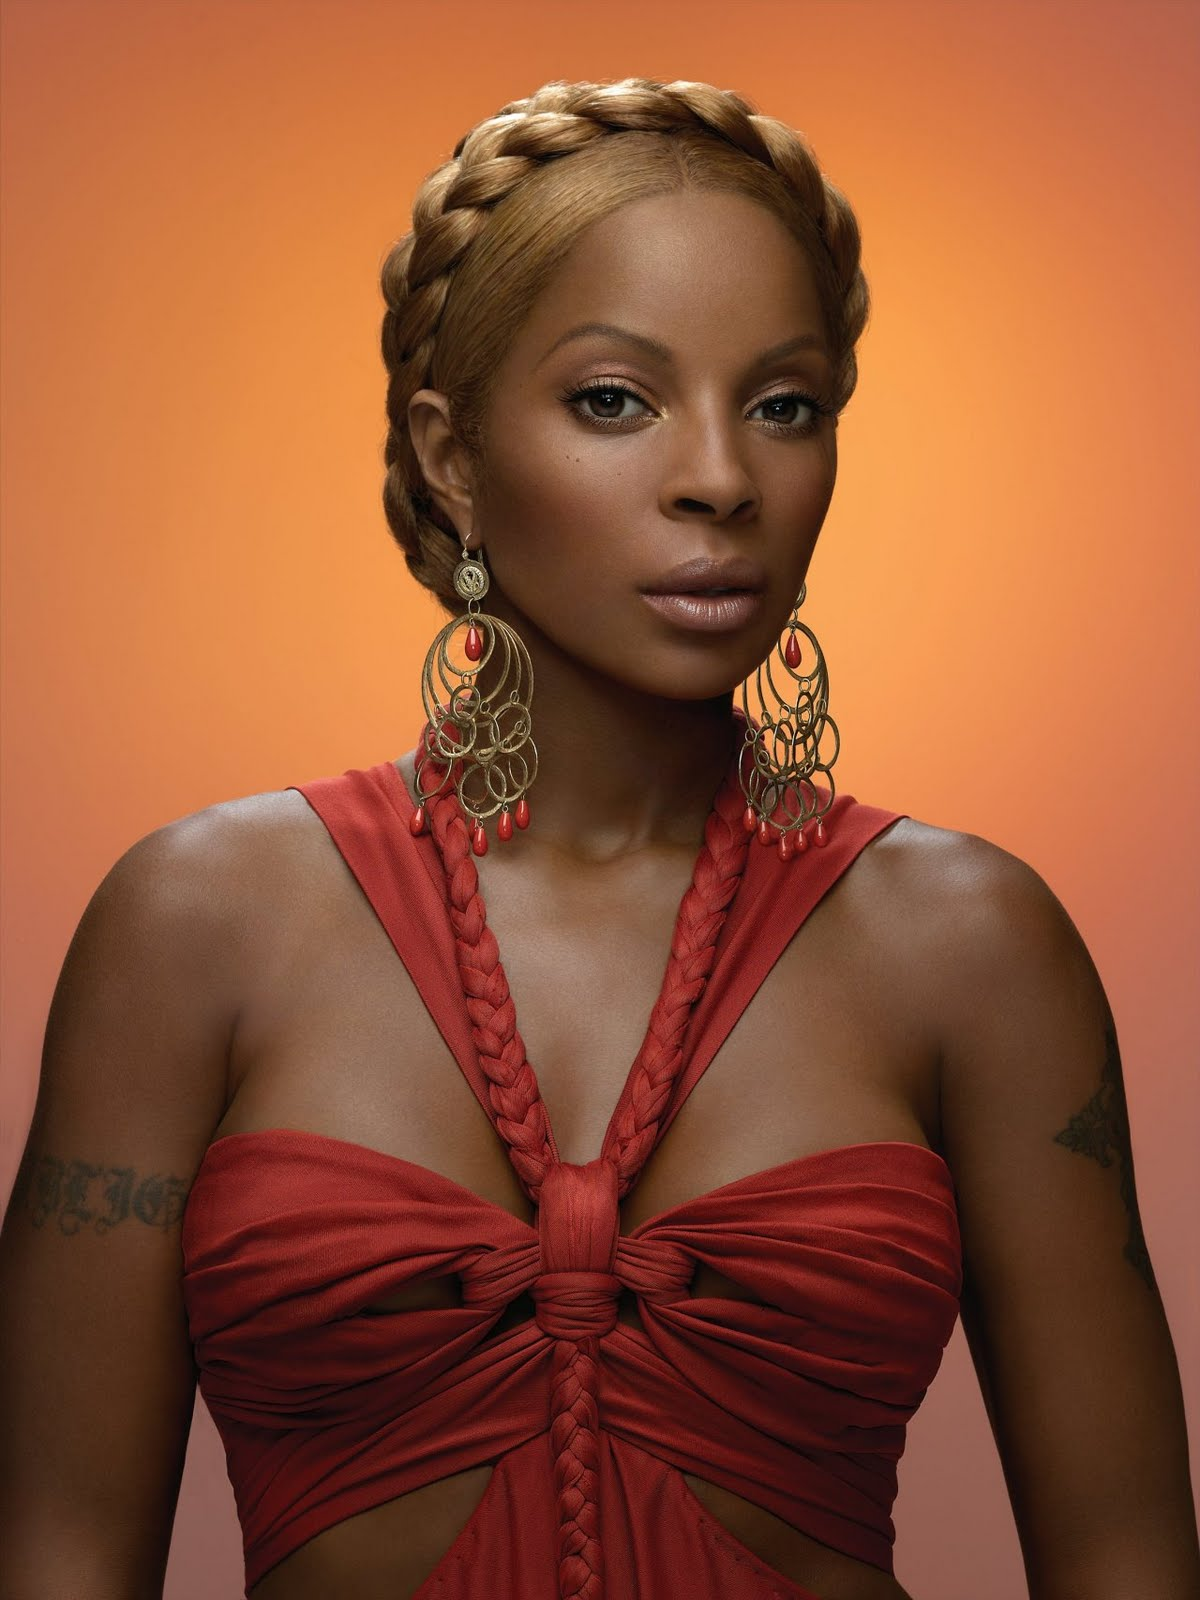 R&B images Mary j Blige HD wallpaper and background photos